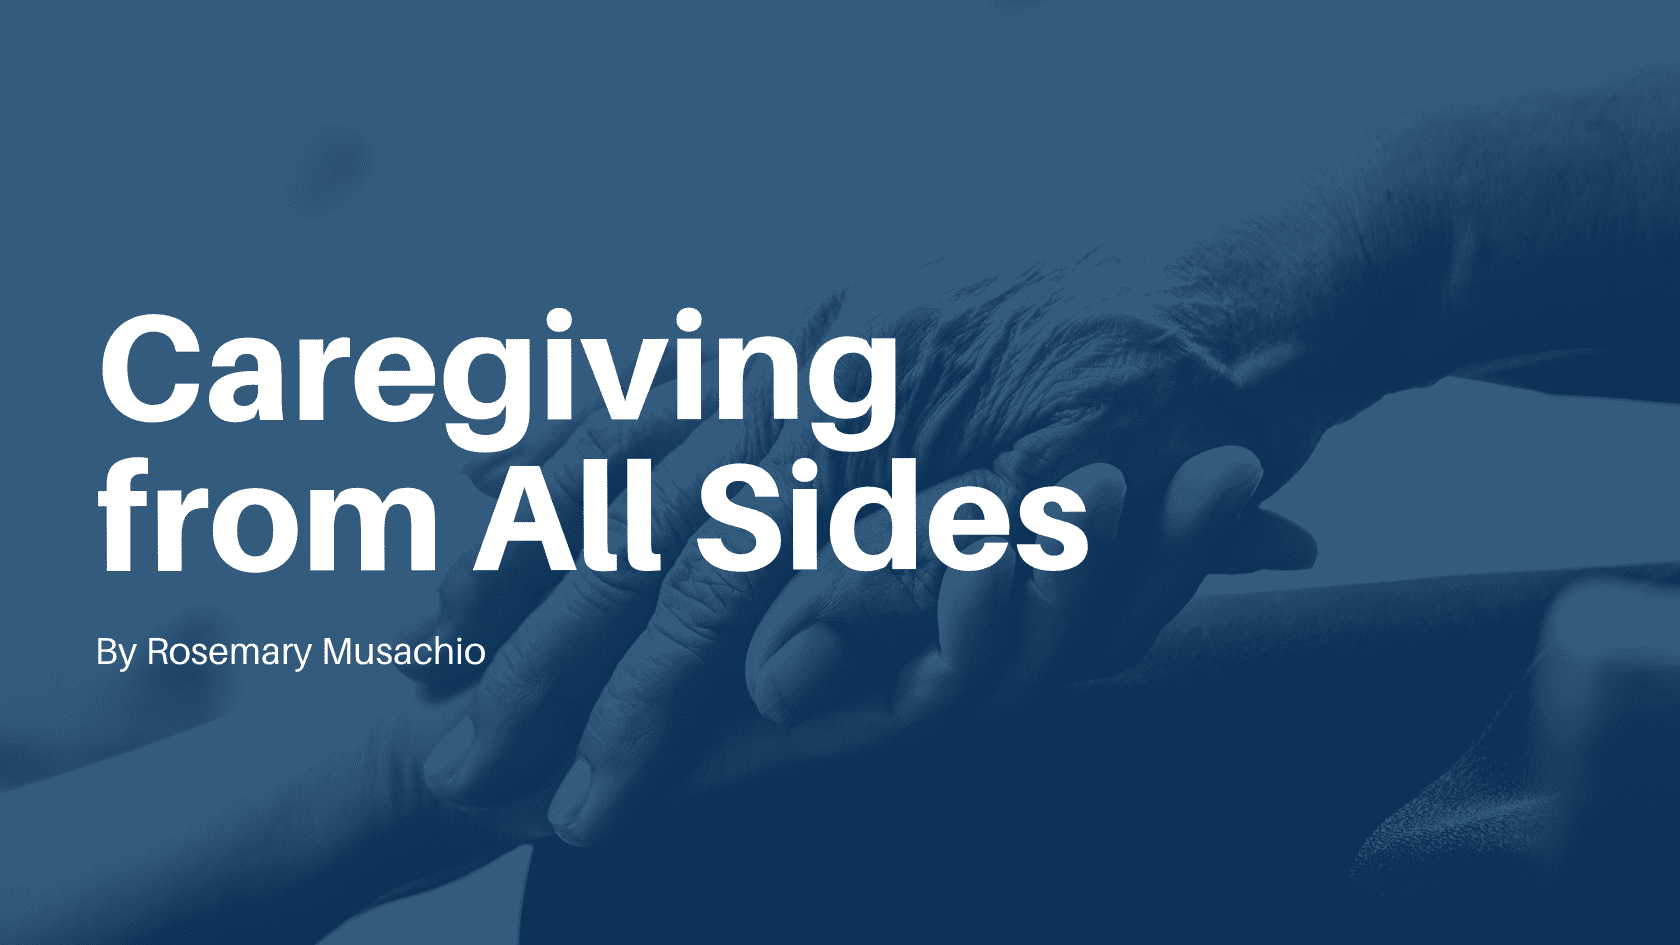 Caregiving from All Sides by Rosemary Musachio